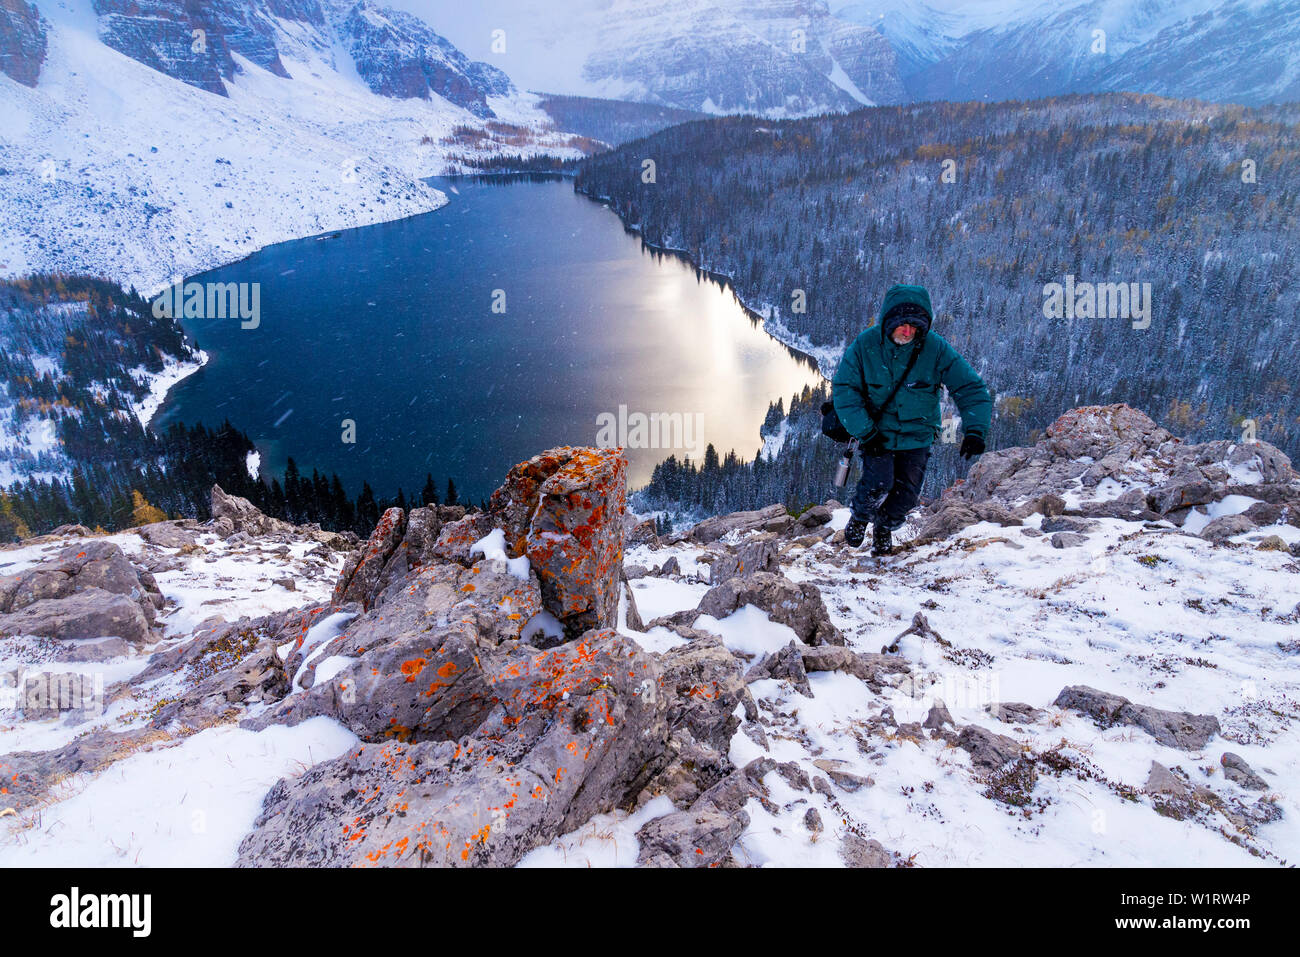 Man hiking  in winter weather conditions,  the Nublet, Mount Assiniboine Provincial Park, British Columbia, Canada Stock Photo